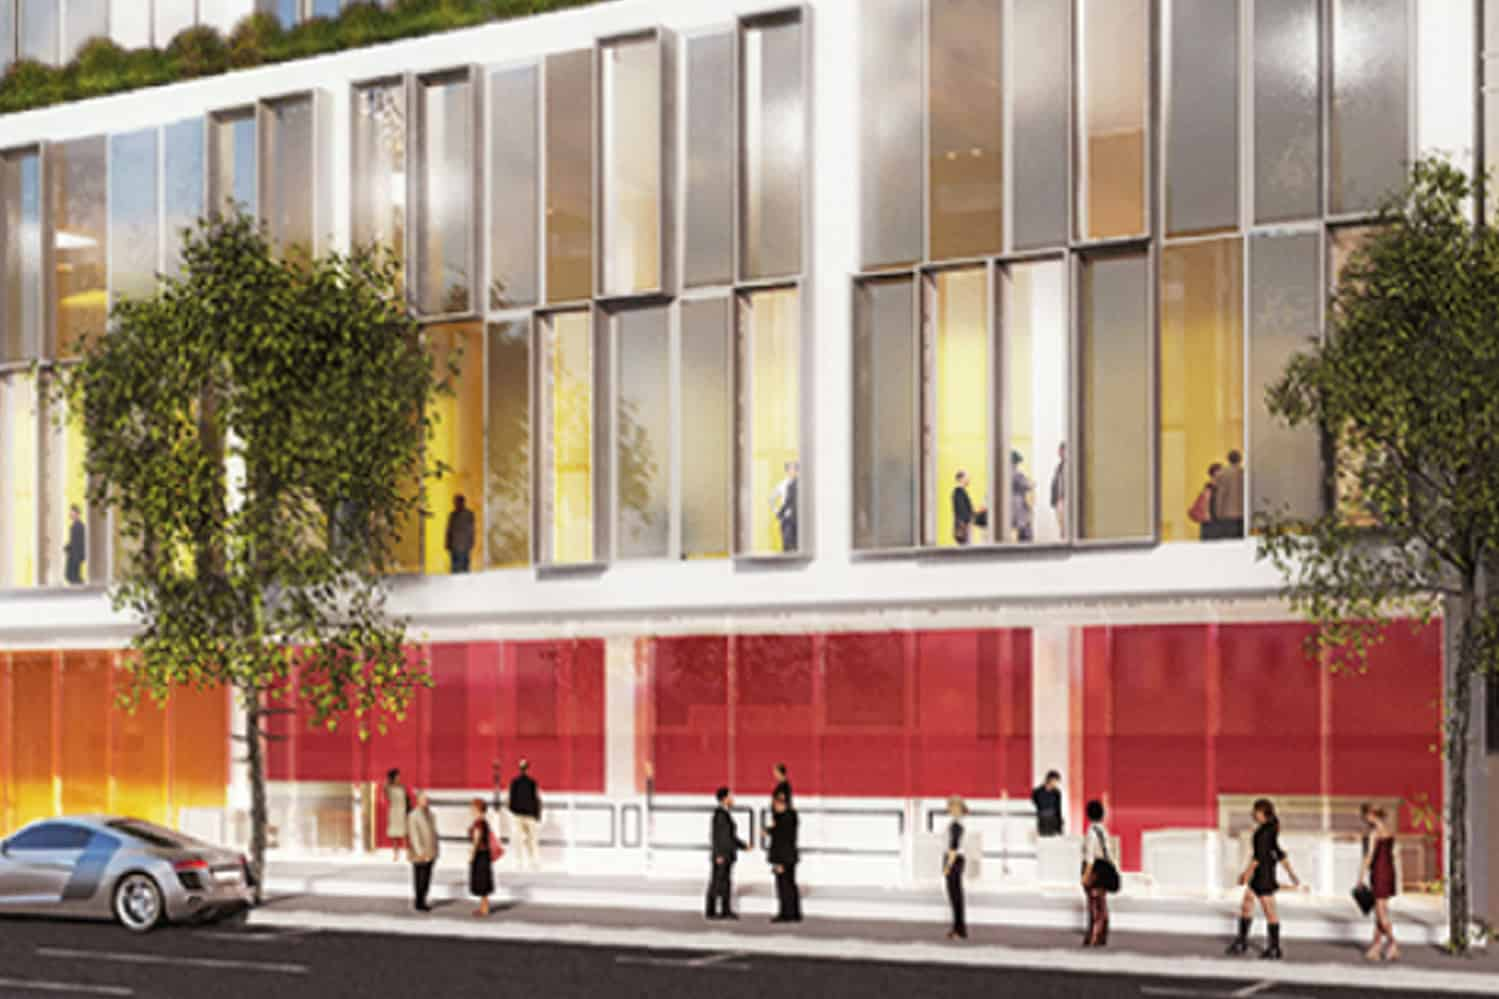 Convention Centre and Hotel in Wellington drawing of exterior building design entrance